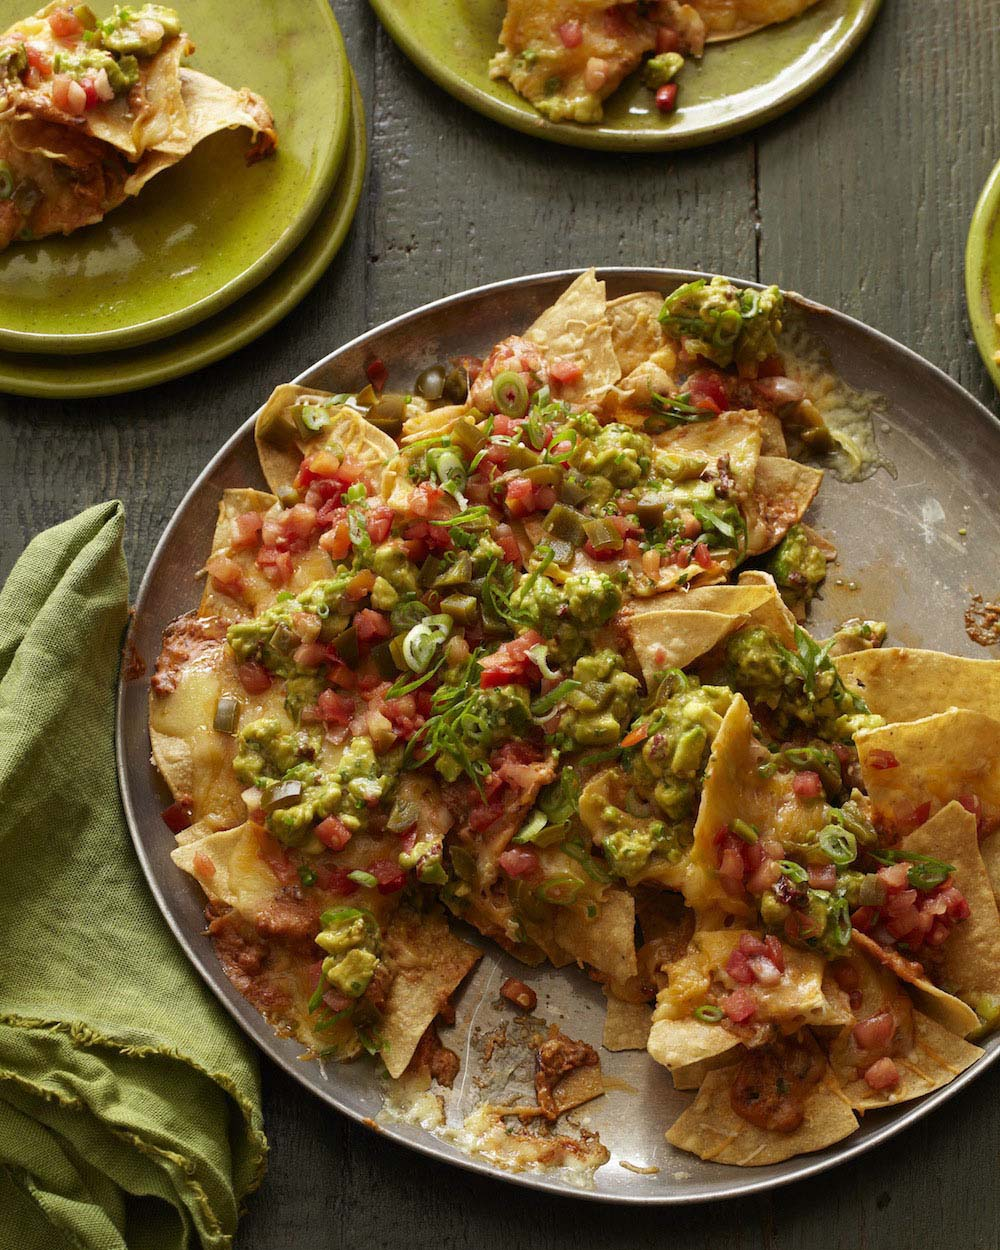 The Ultimate Avocado Nachos from Absolutely Avocados by Gaby Dalkin